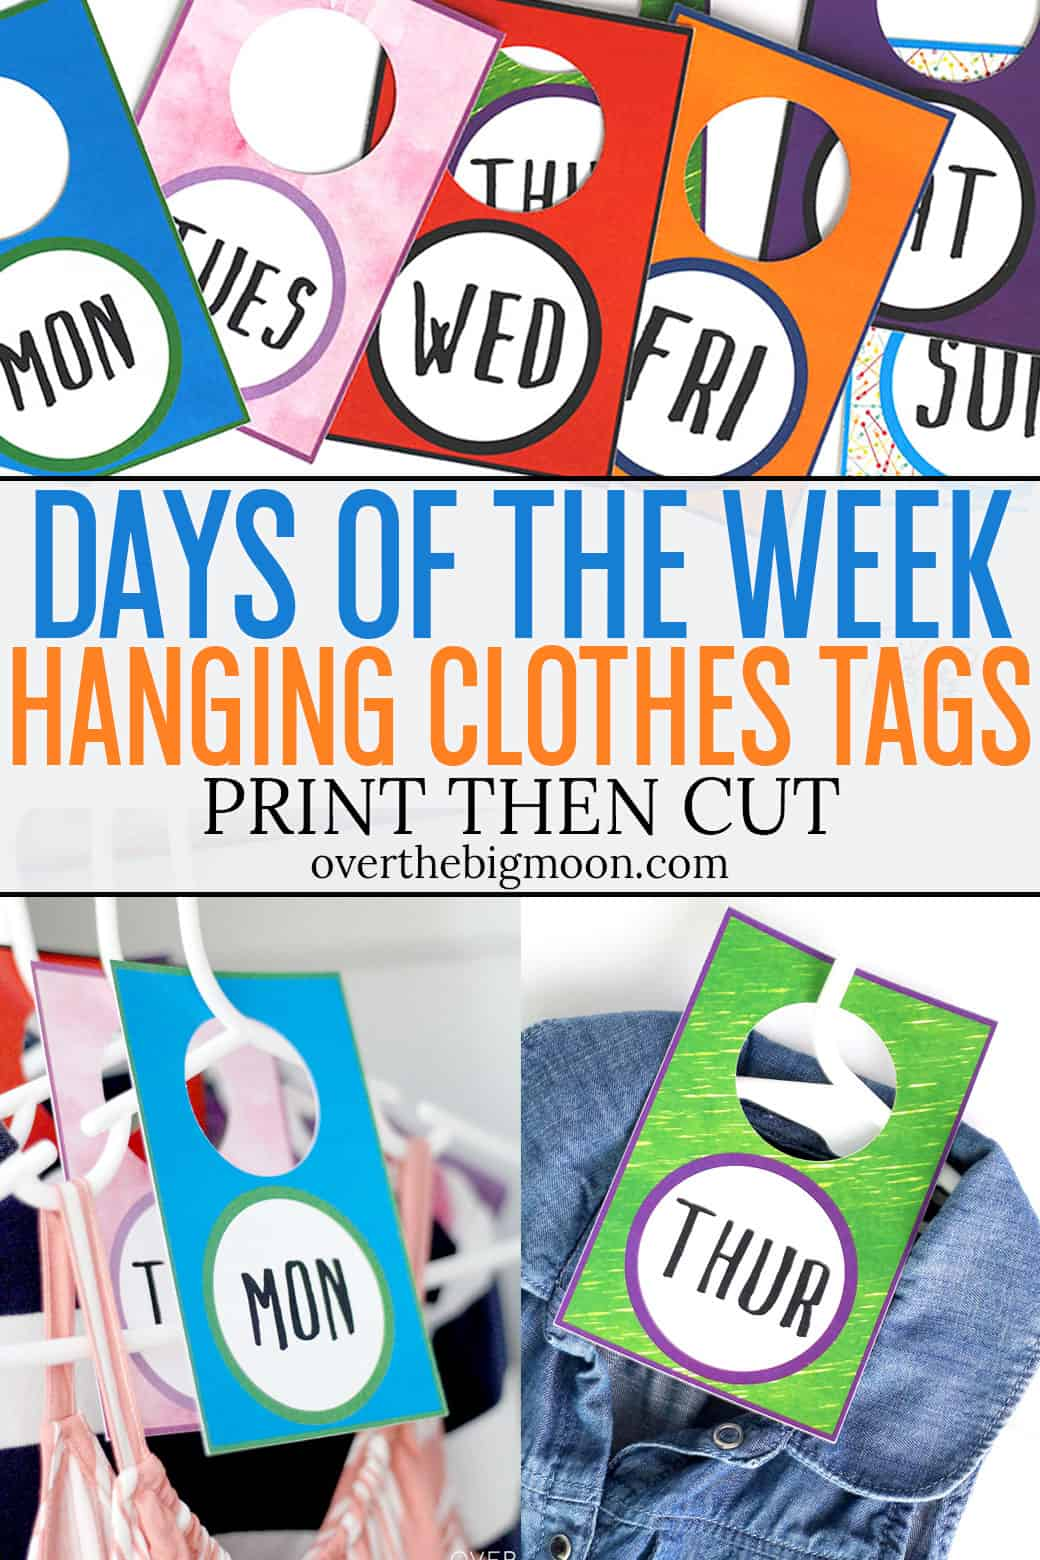 These Days of the WeekClothes Tags are the perfect way to help kids organize their outfits for the week! Use Cricut's Print then Cut feature to make these hanging tags! Super simple and easy to customize!From overthebigmoon.com!